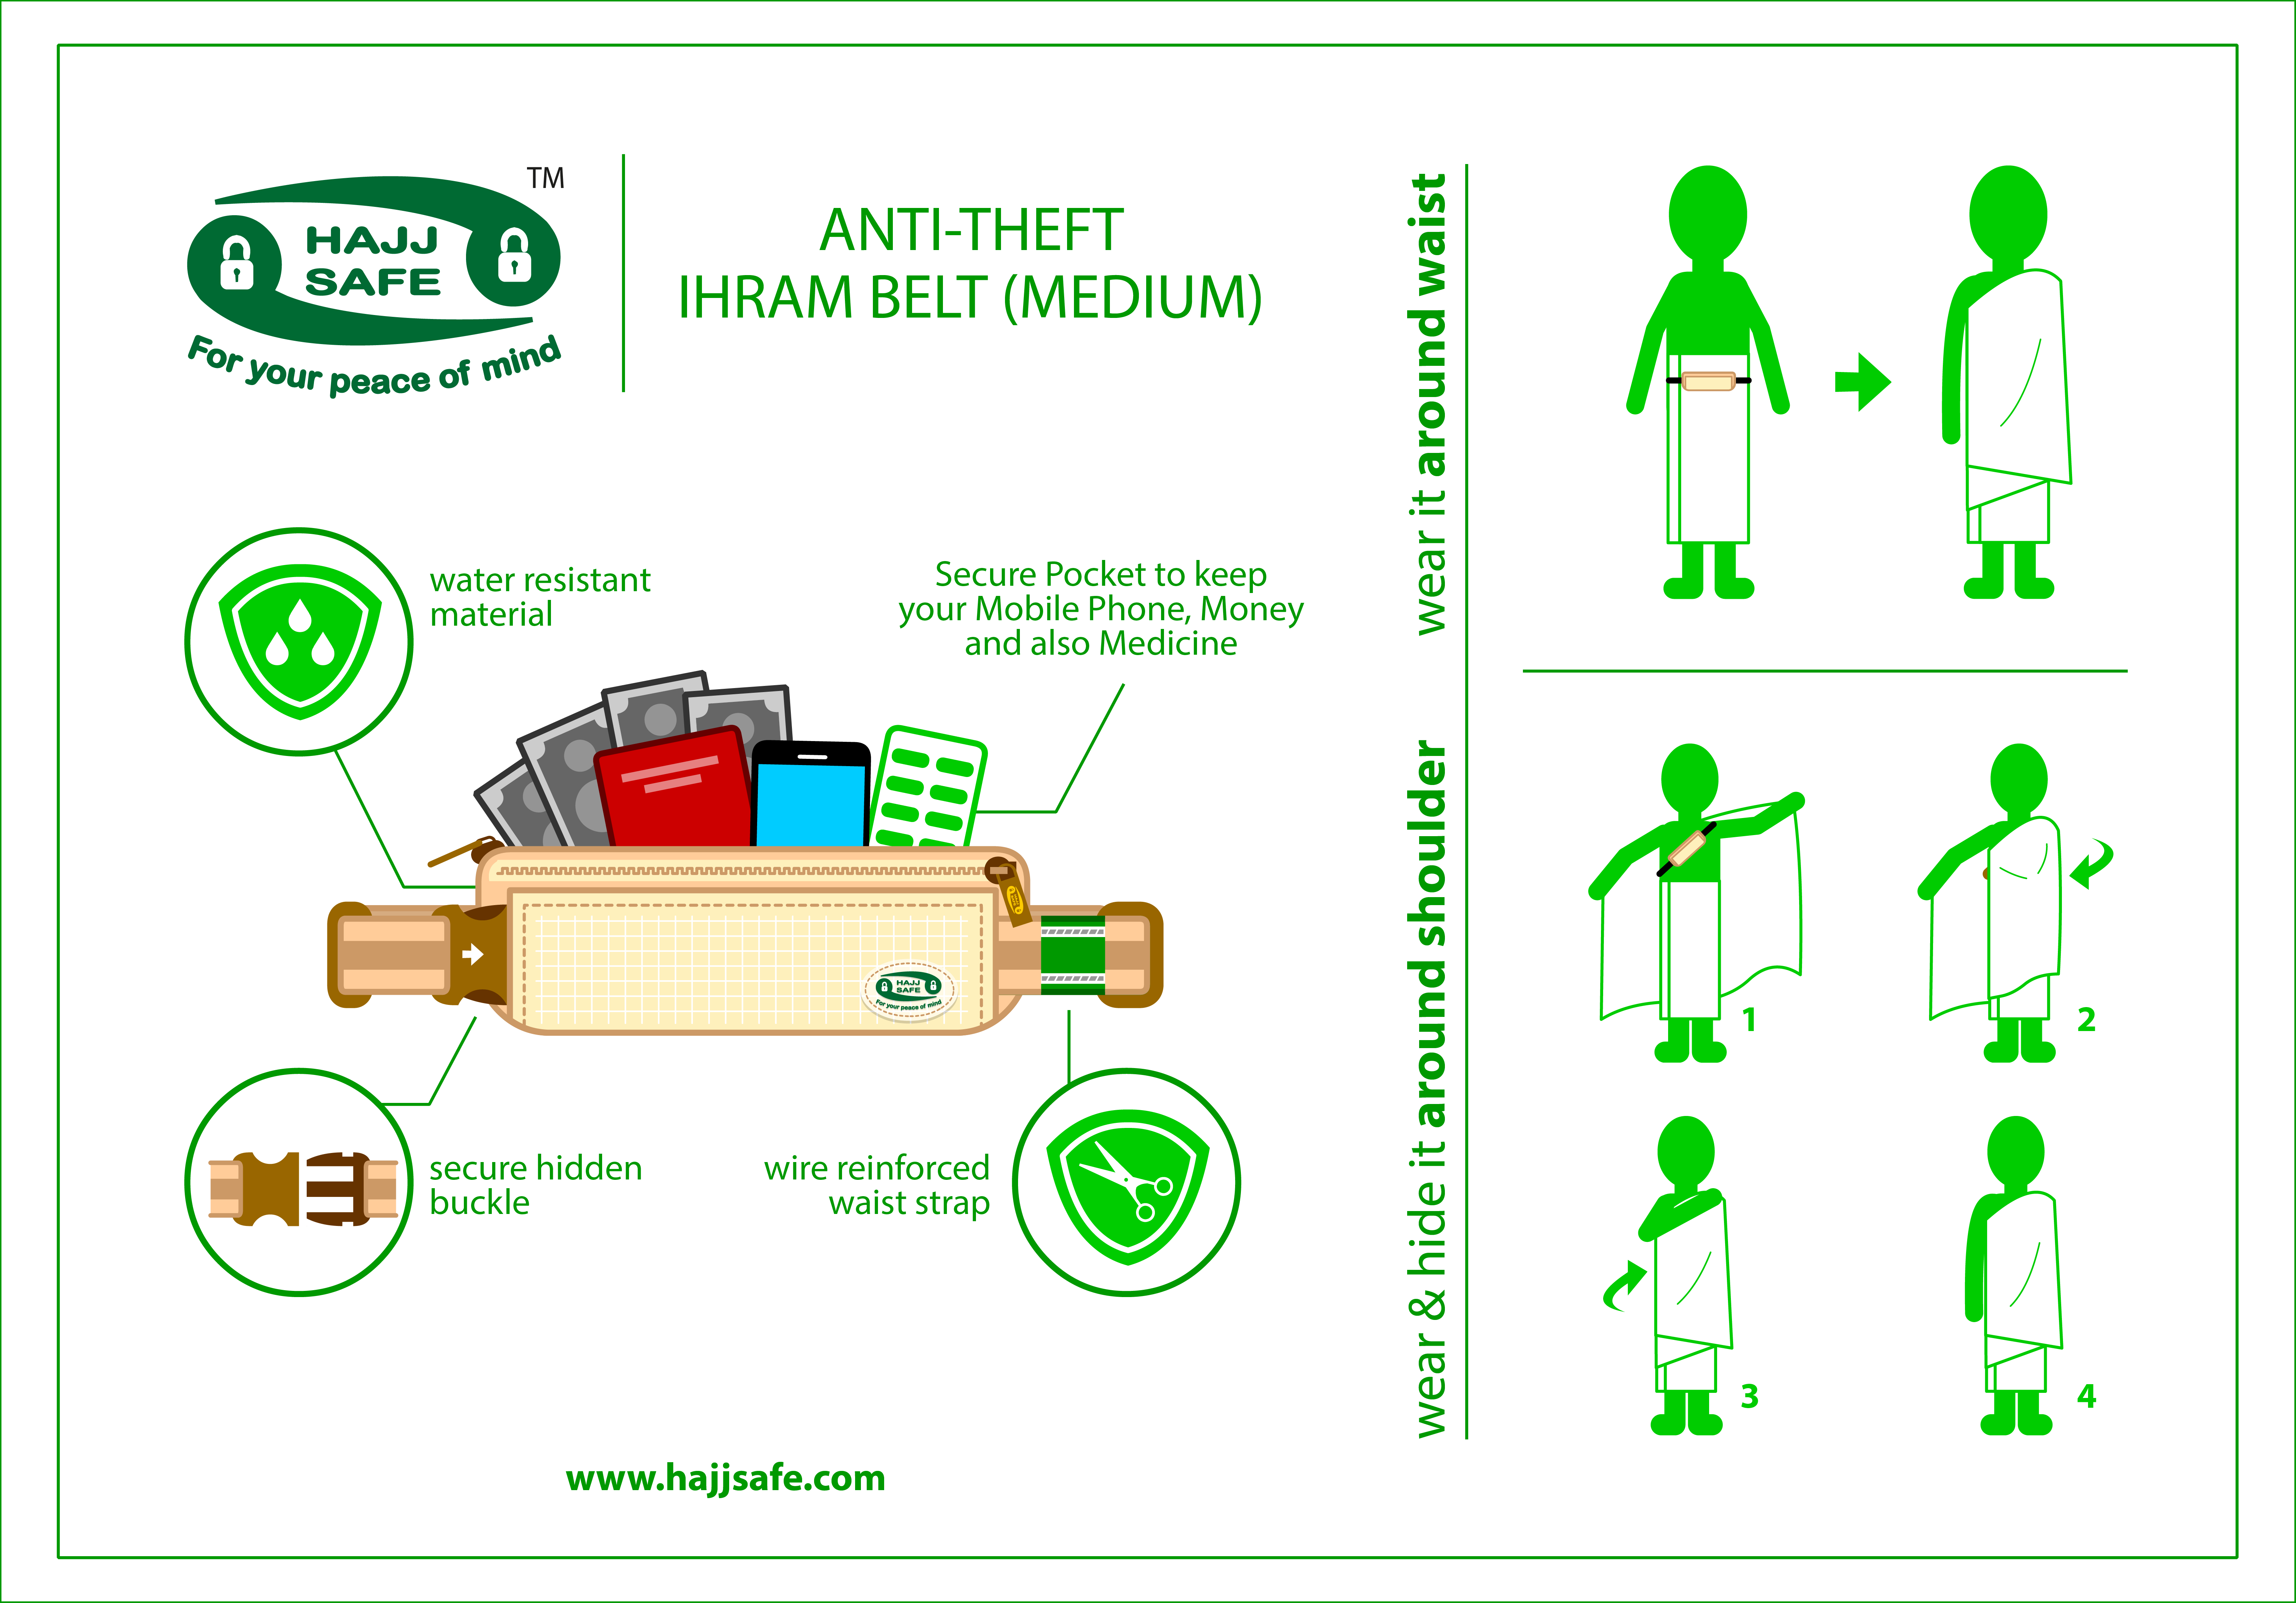 hajj-safe-anti-theft-money-belt-and-ihram-belt-medium.png